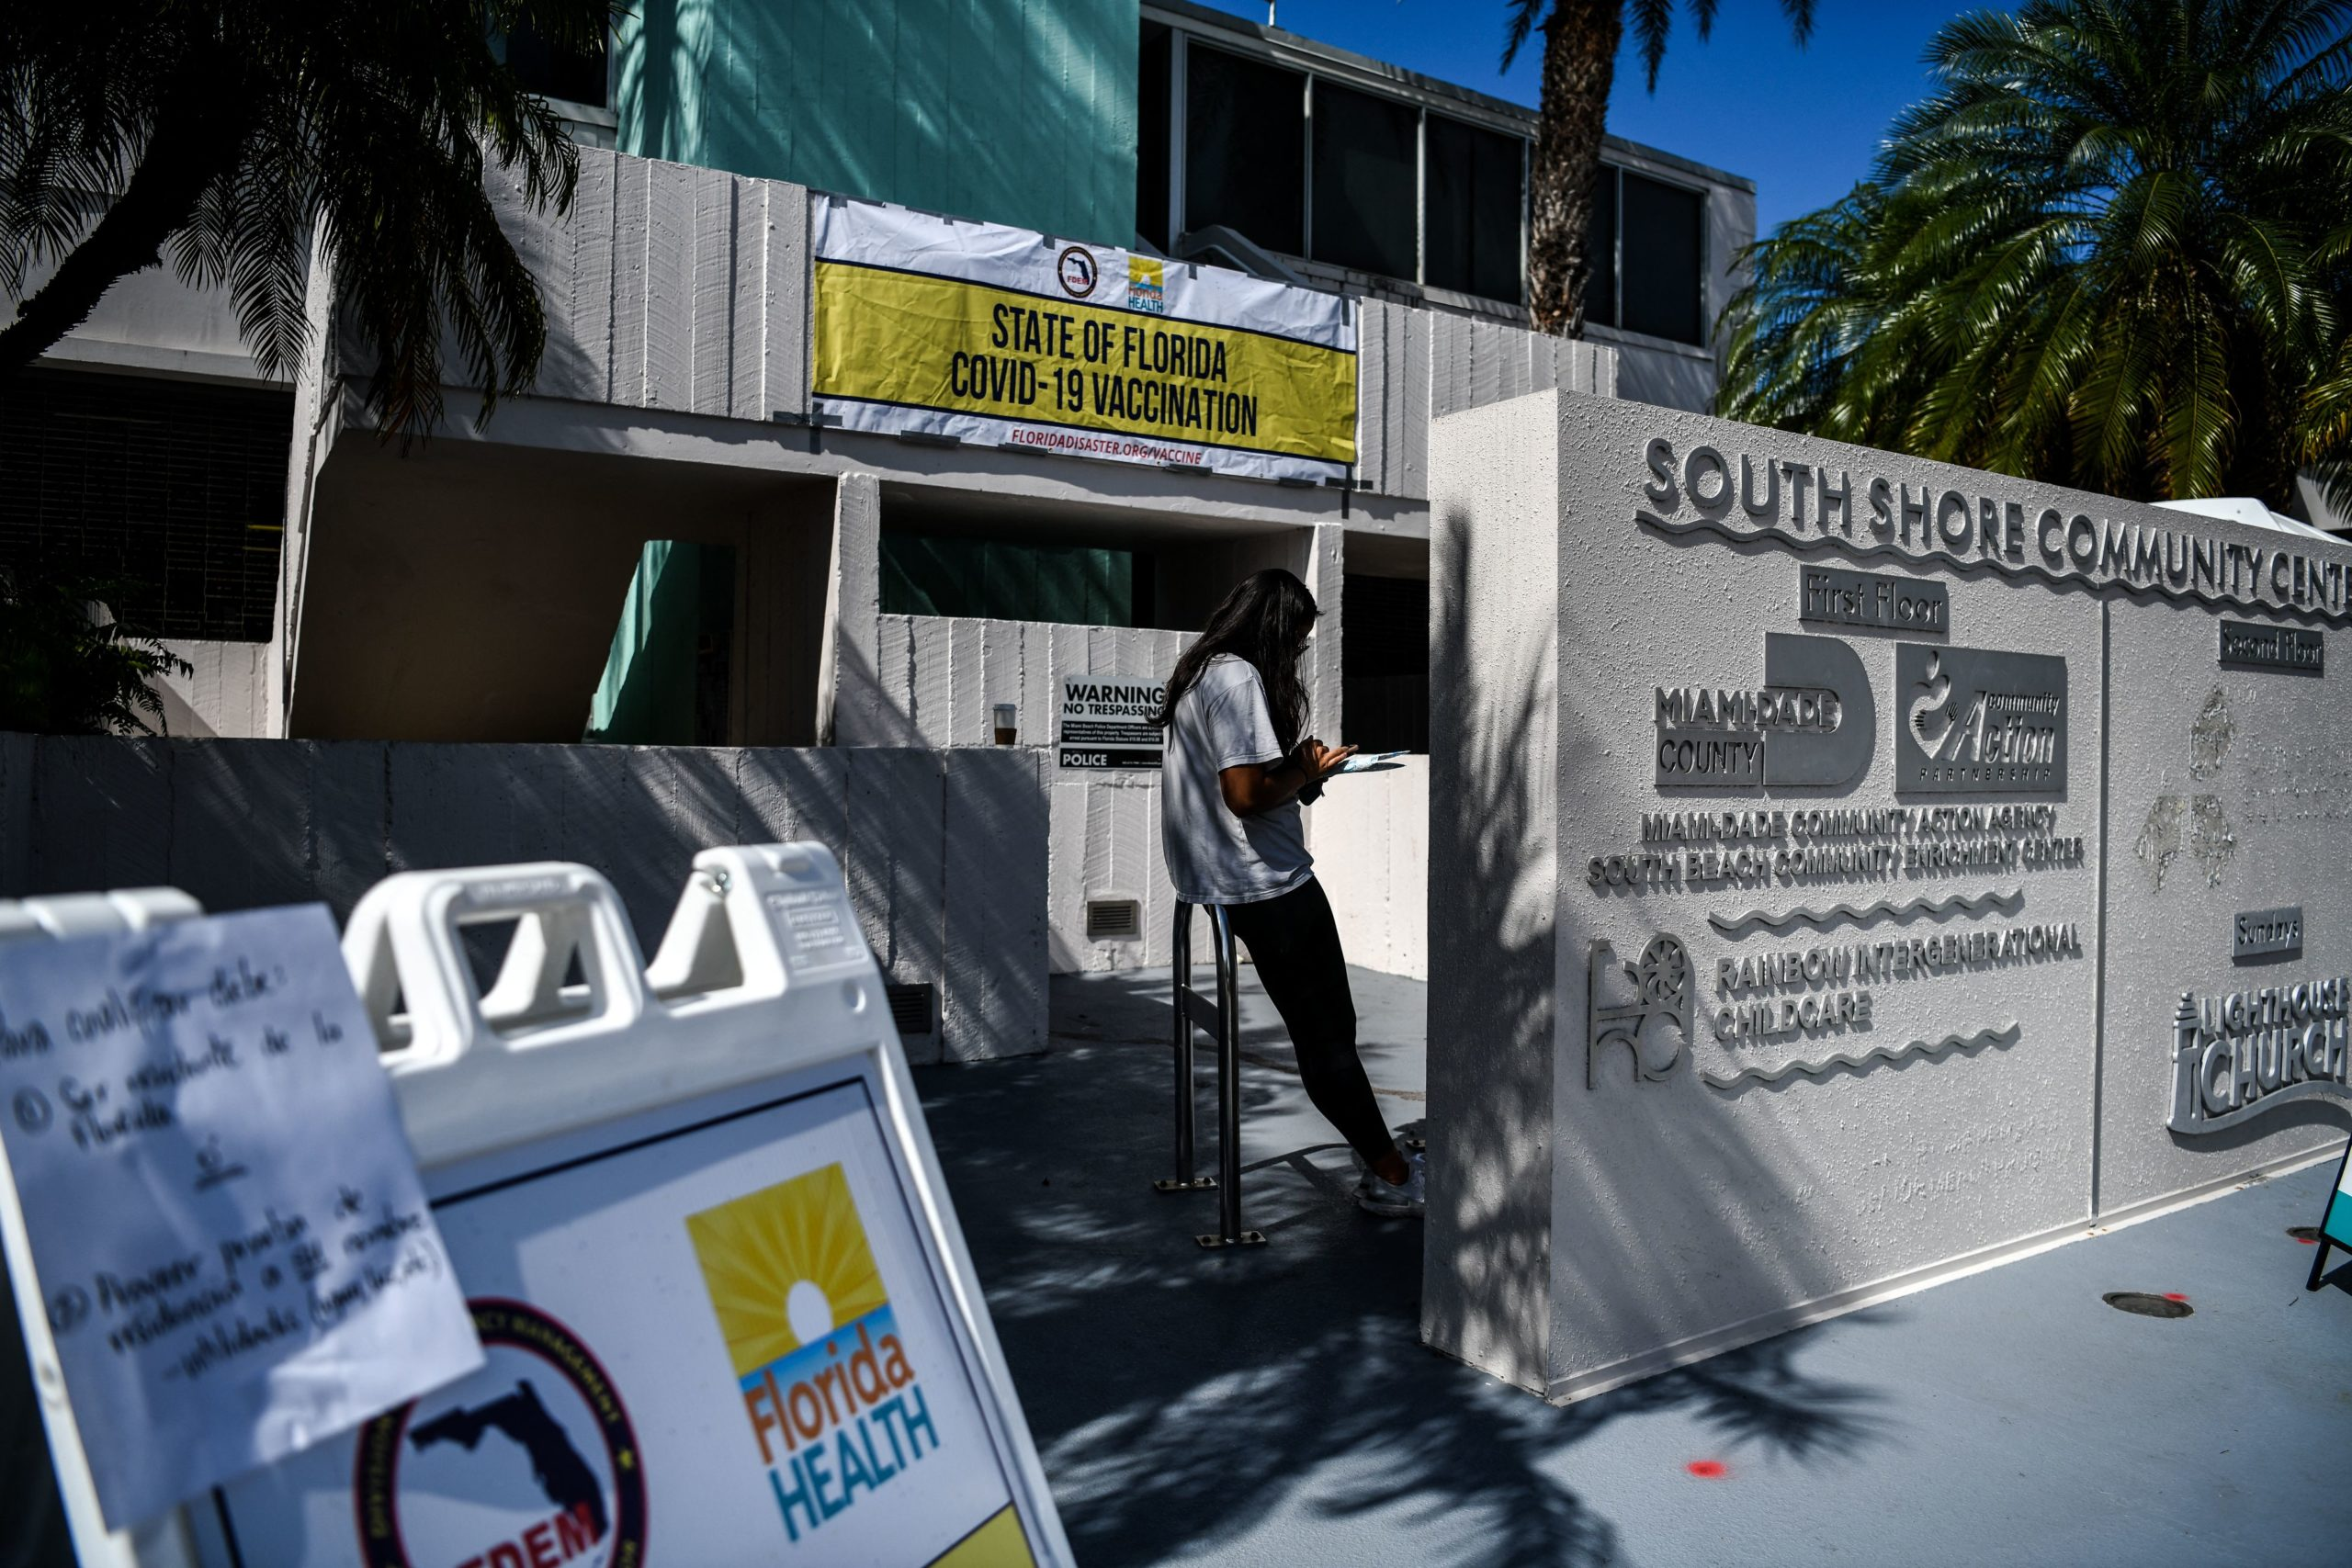 A woman waits for a coronavirus vaccine at a pop-up vaccination site in Miami Beach, Florida on April 8. (Chandan Khanna/AFP via Getty Images)